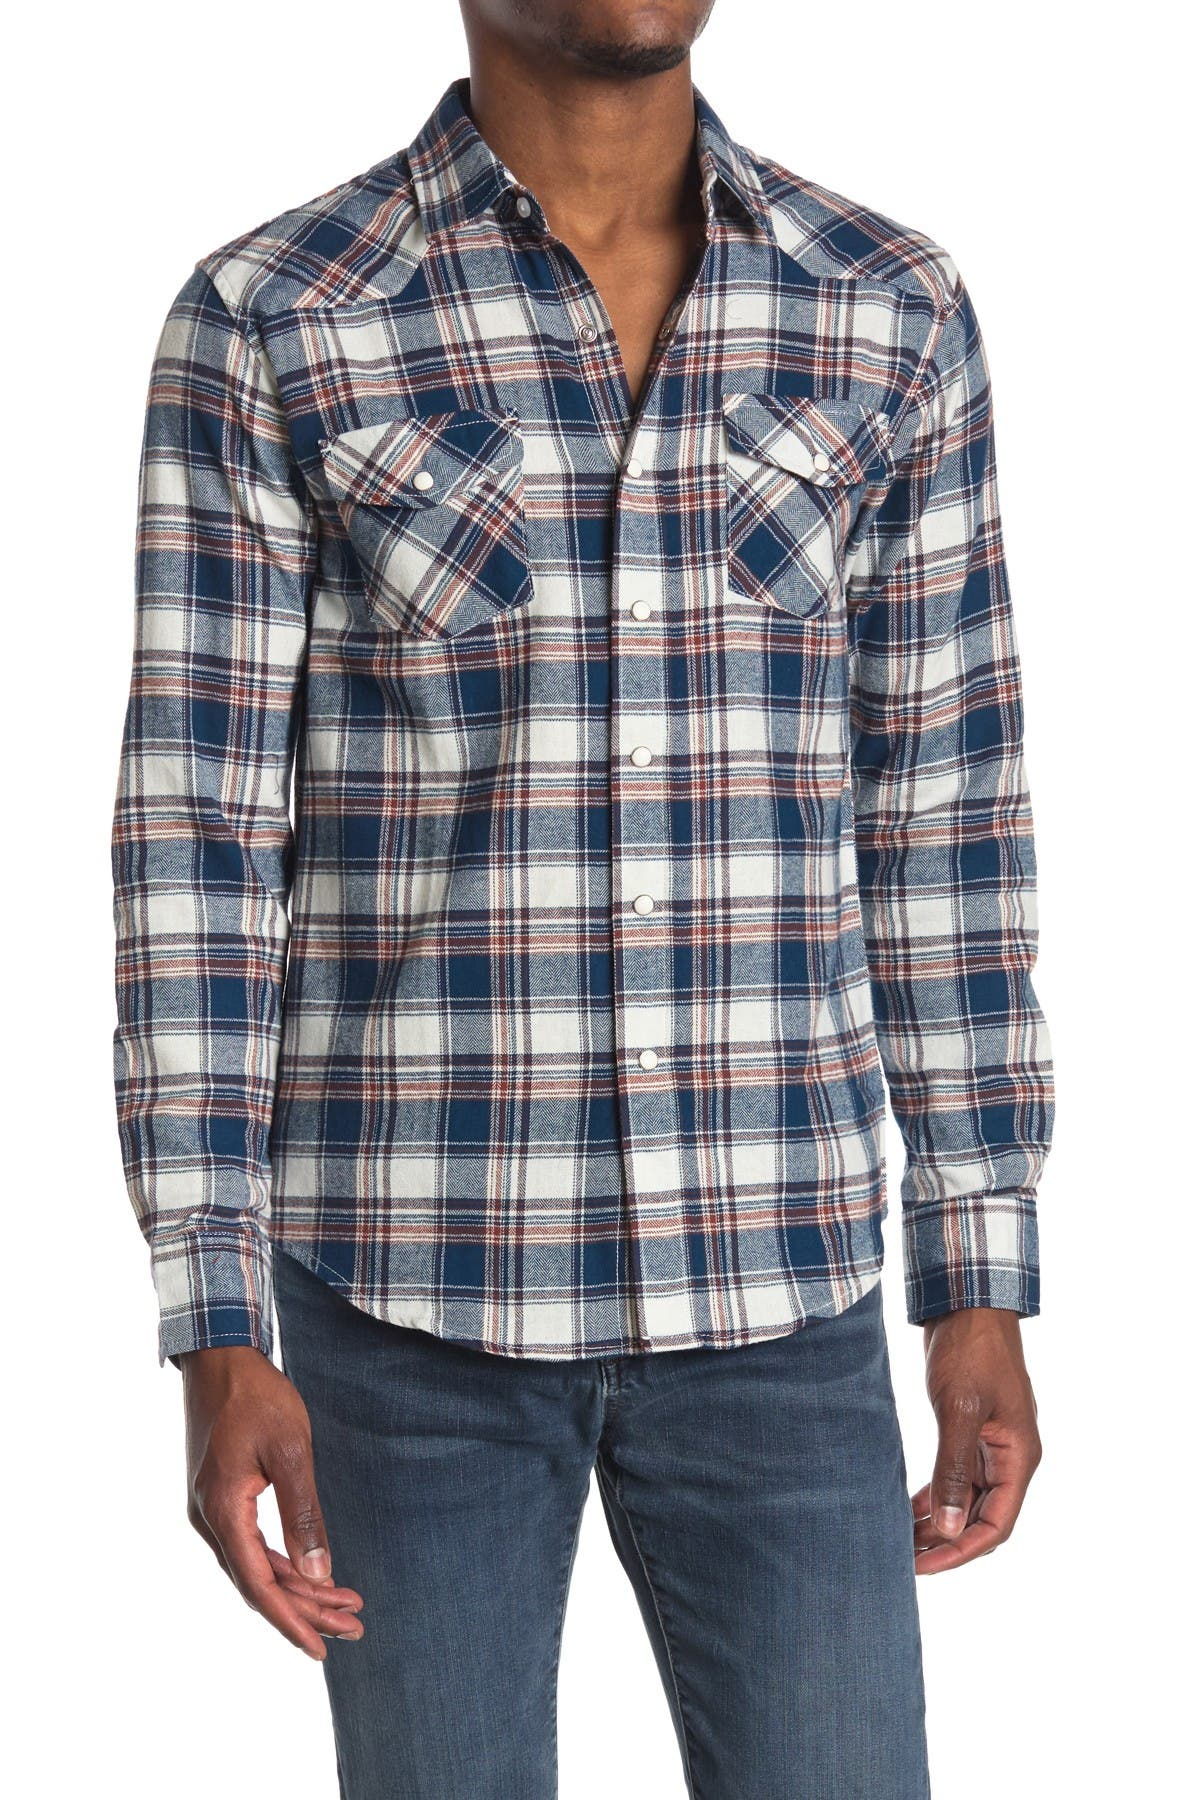 Image of Coastal Pelican Brushed Cotton Flannel